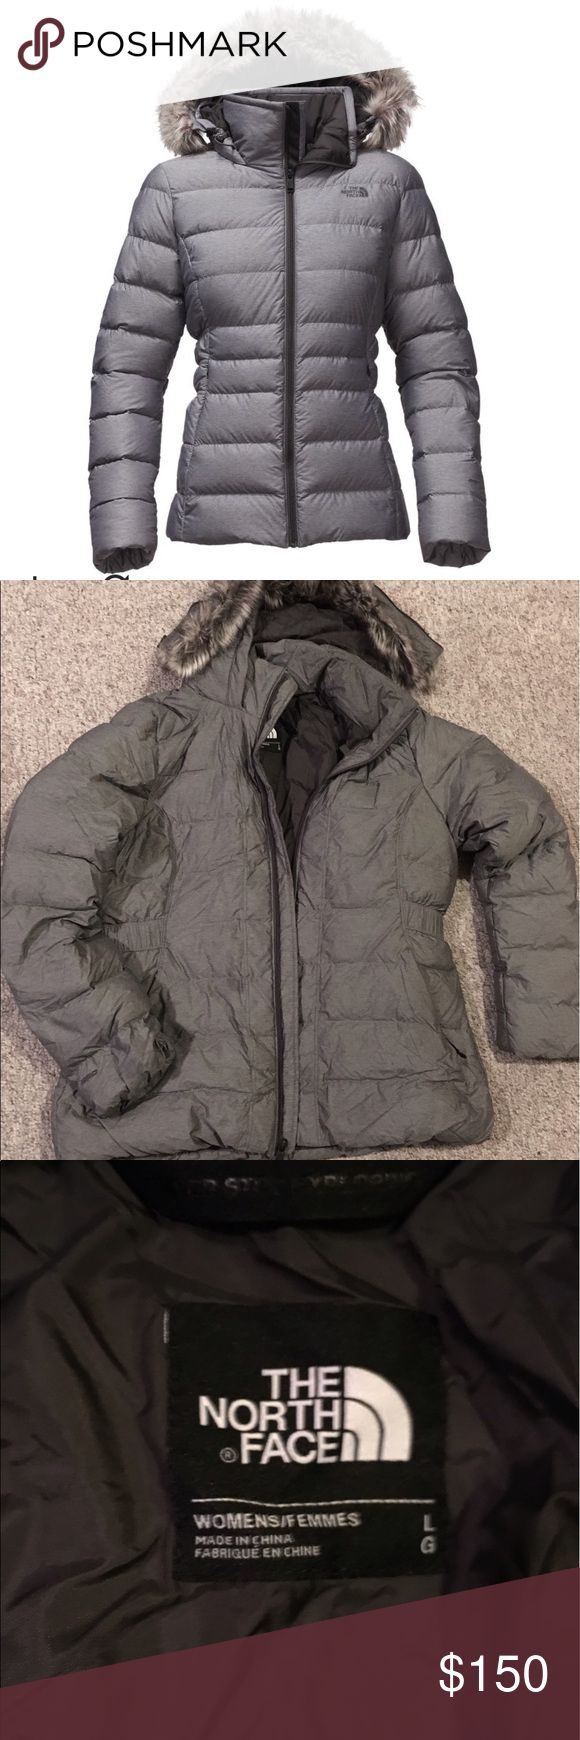 The NorthFace Gotham Jacket Size L- worn a total of 3 times. One slight unnoticeable discoloration in photo. Make an offer. Currently selling online for $230 The North Face Jackets & Coats Puffers